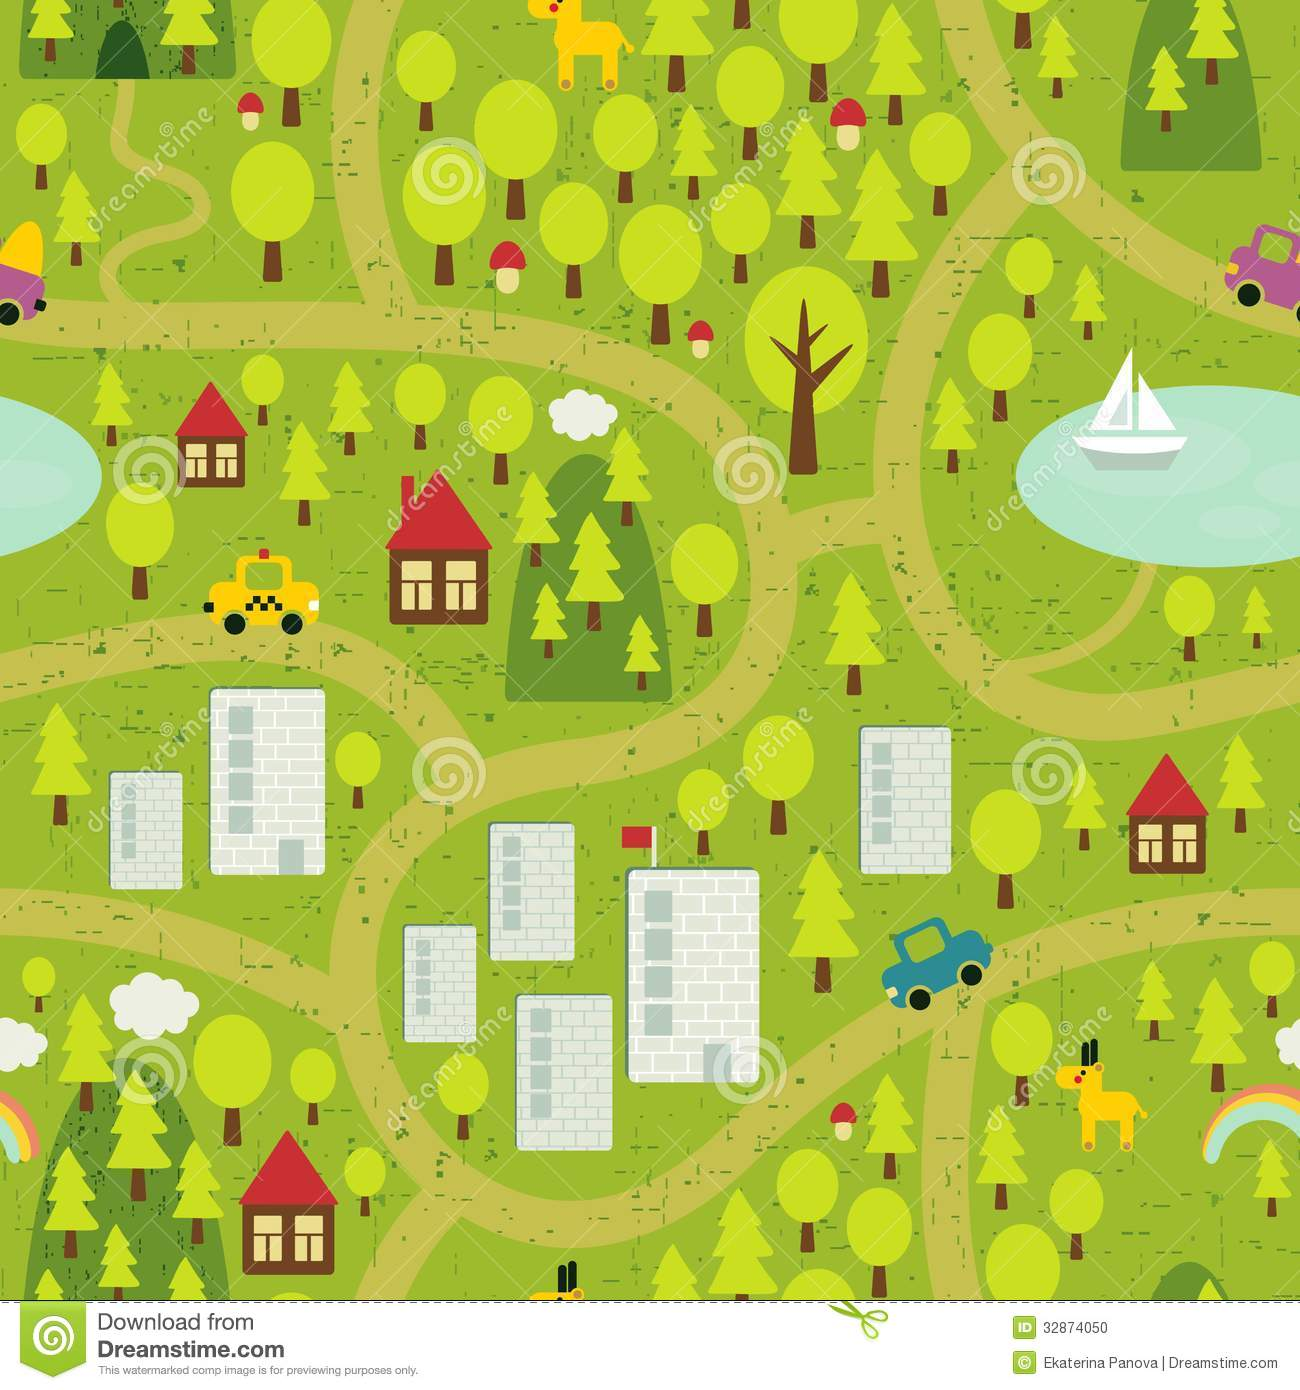 Cartoon Map Of Small Town And Countryside Stock Photo